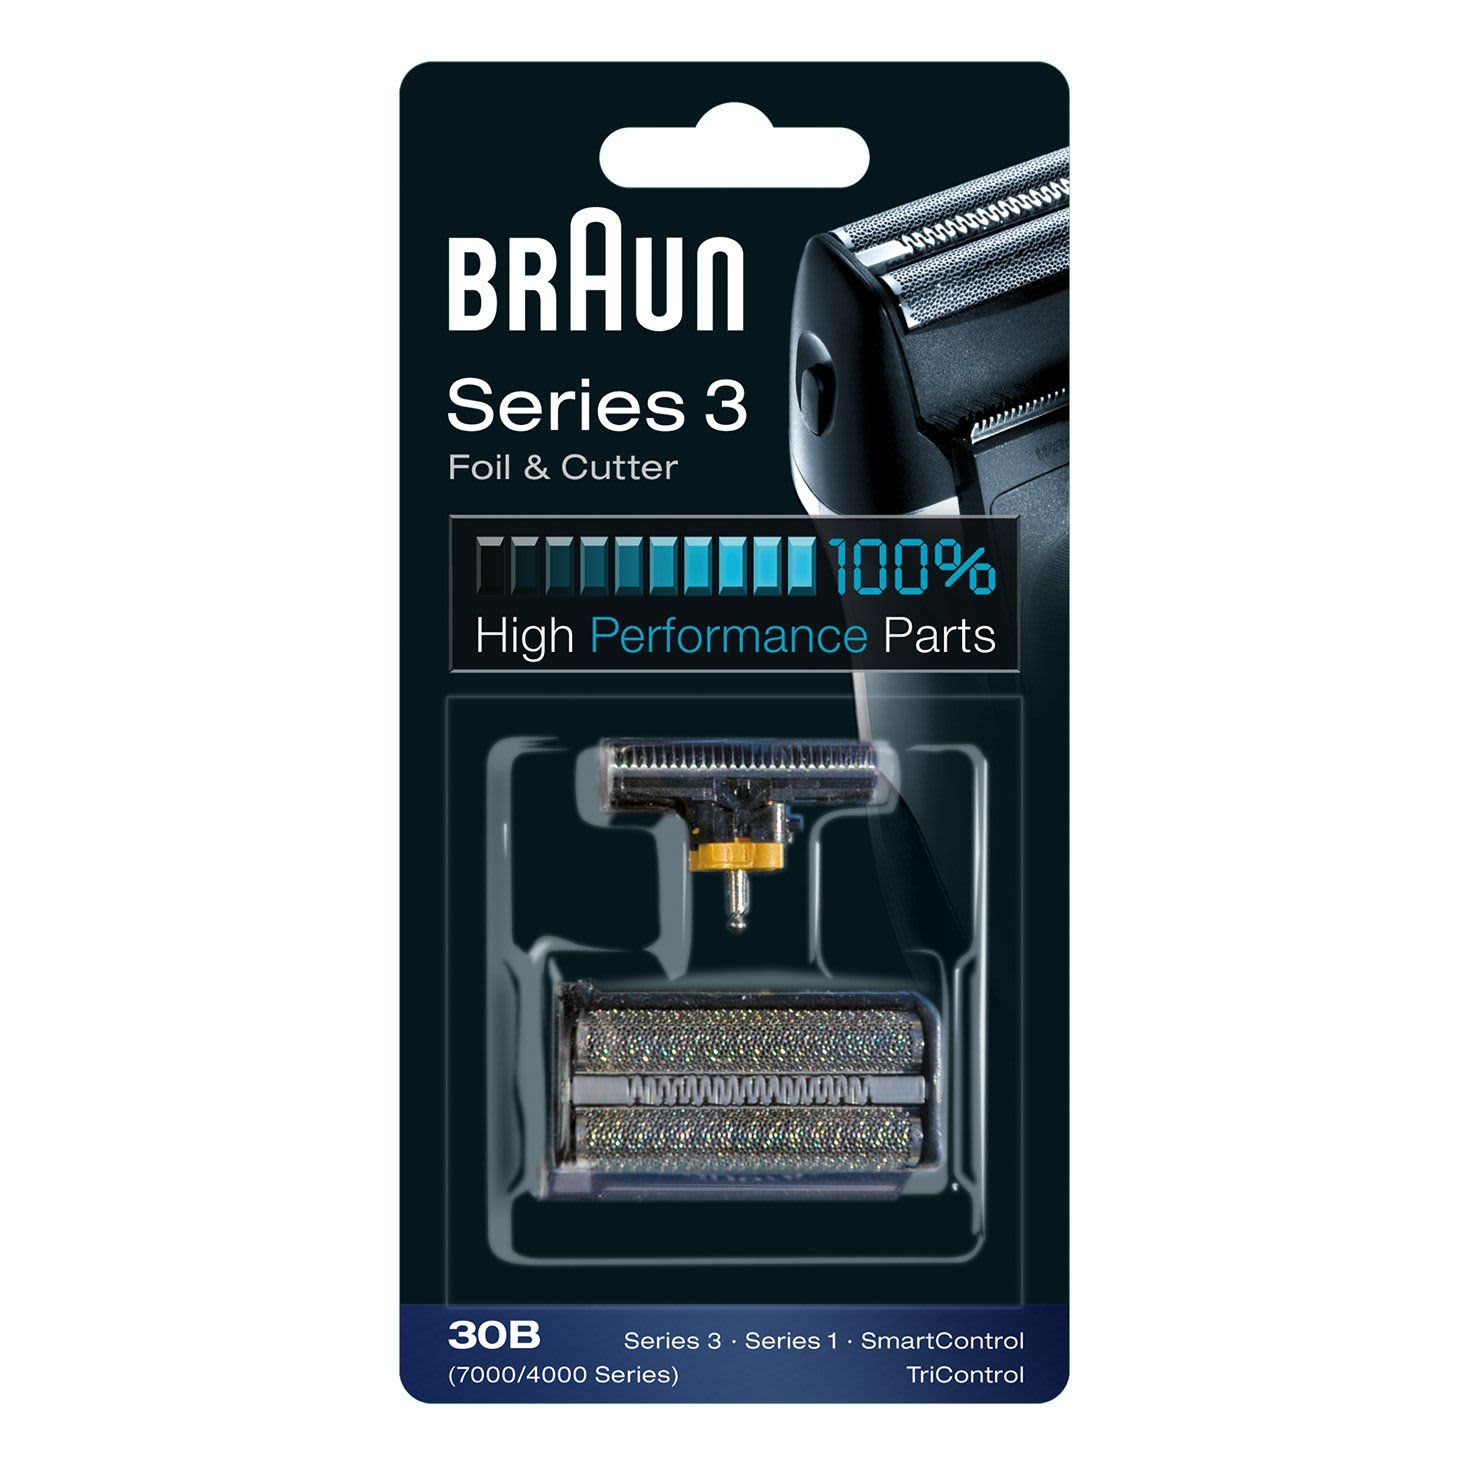 Braun Series 3 Combi 30b Foil and Cutter Replacement pack